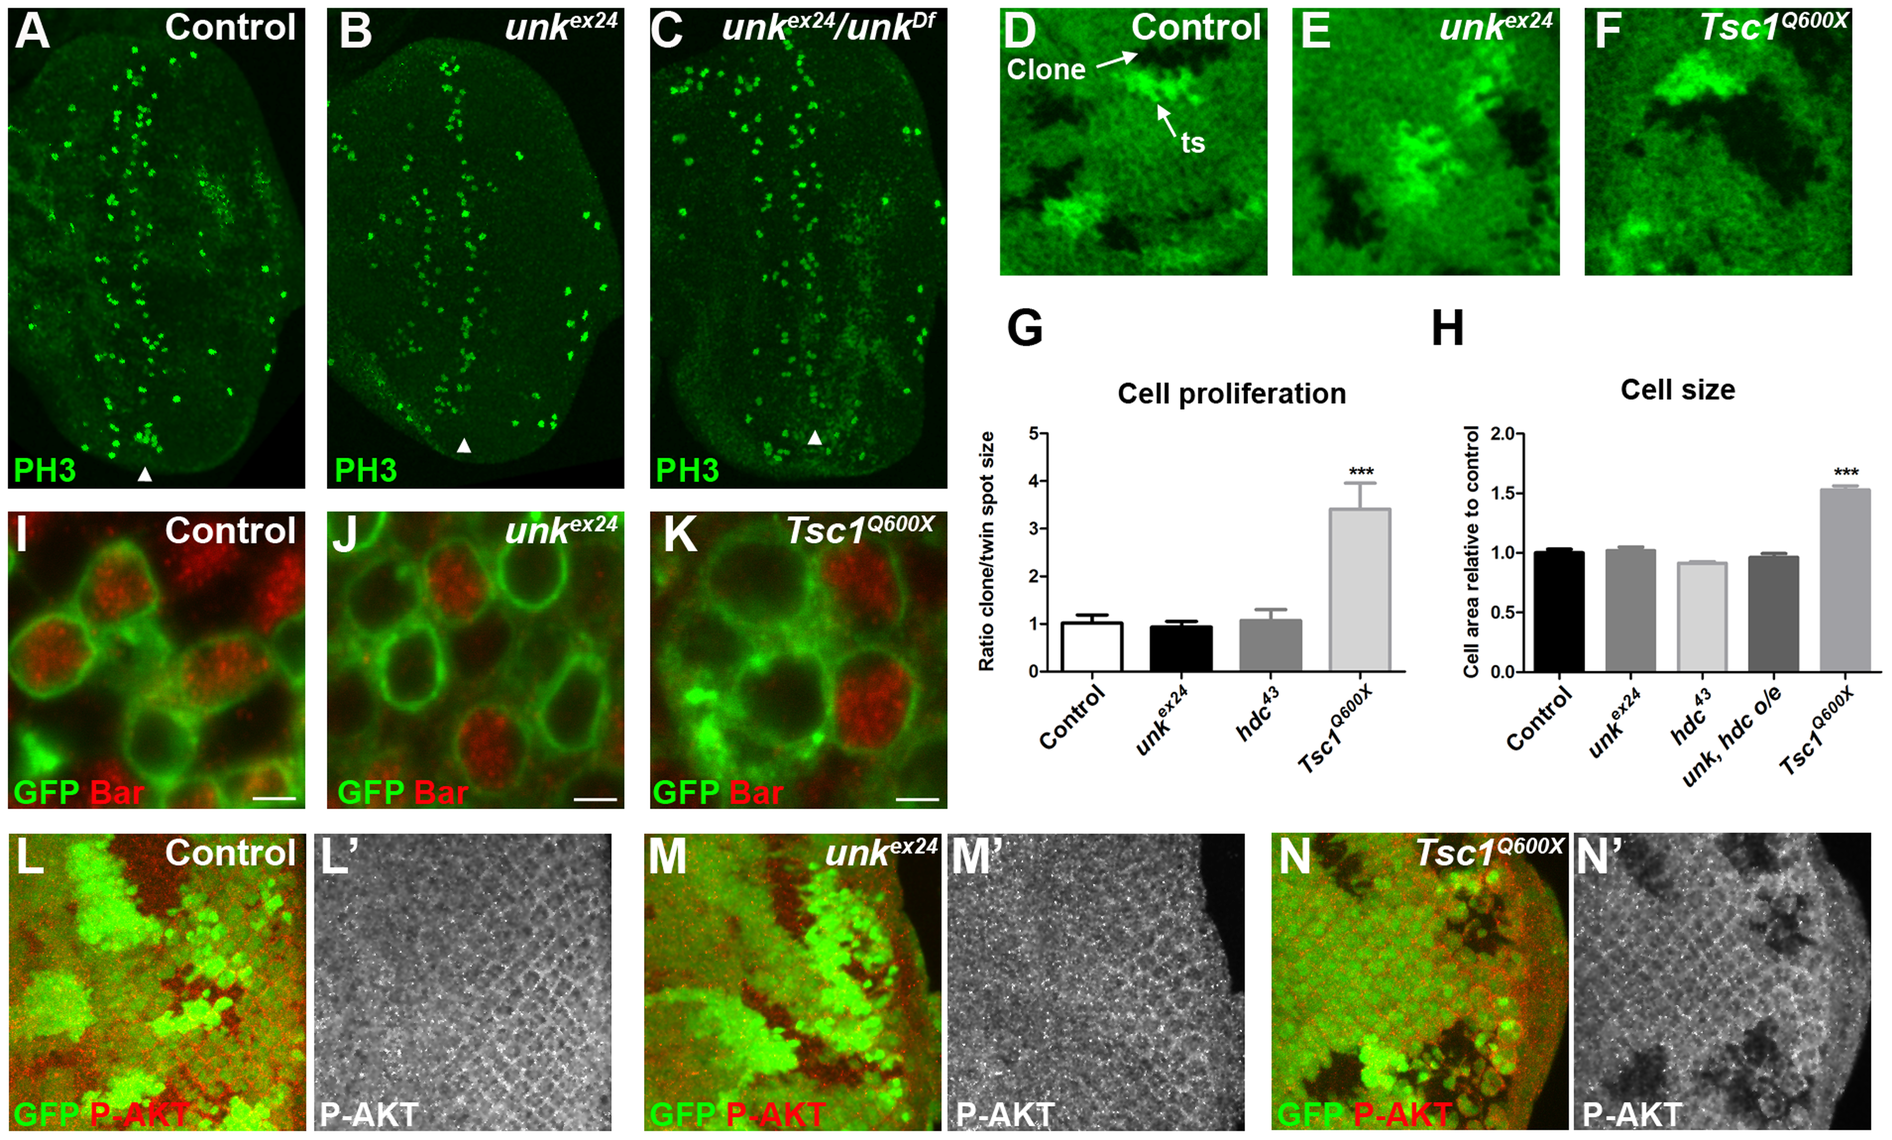 <i>unk</i> does not regulate cell growth.